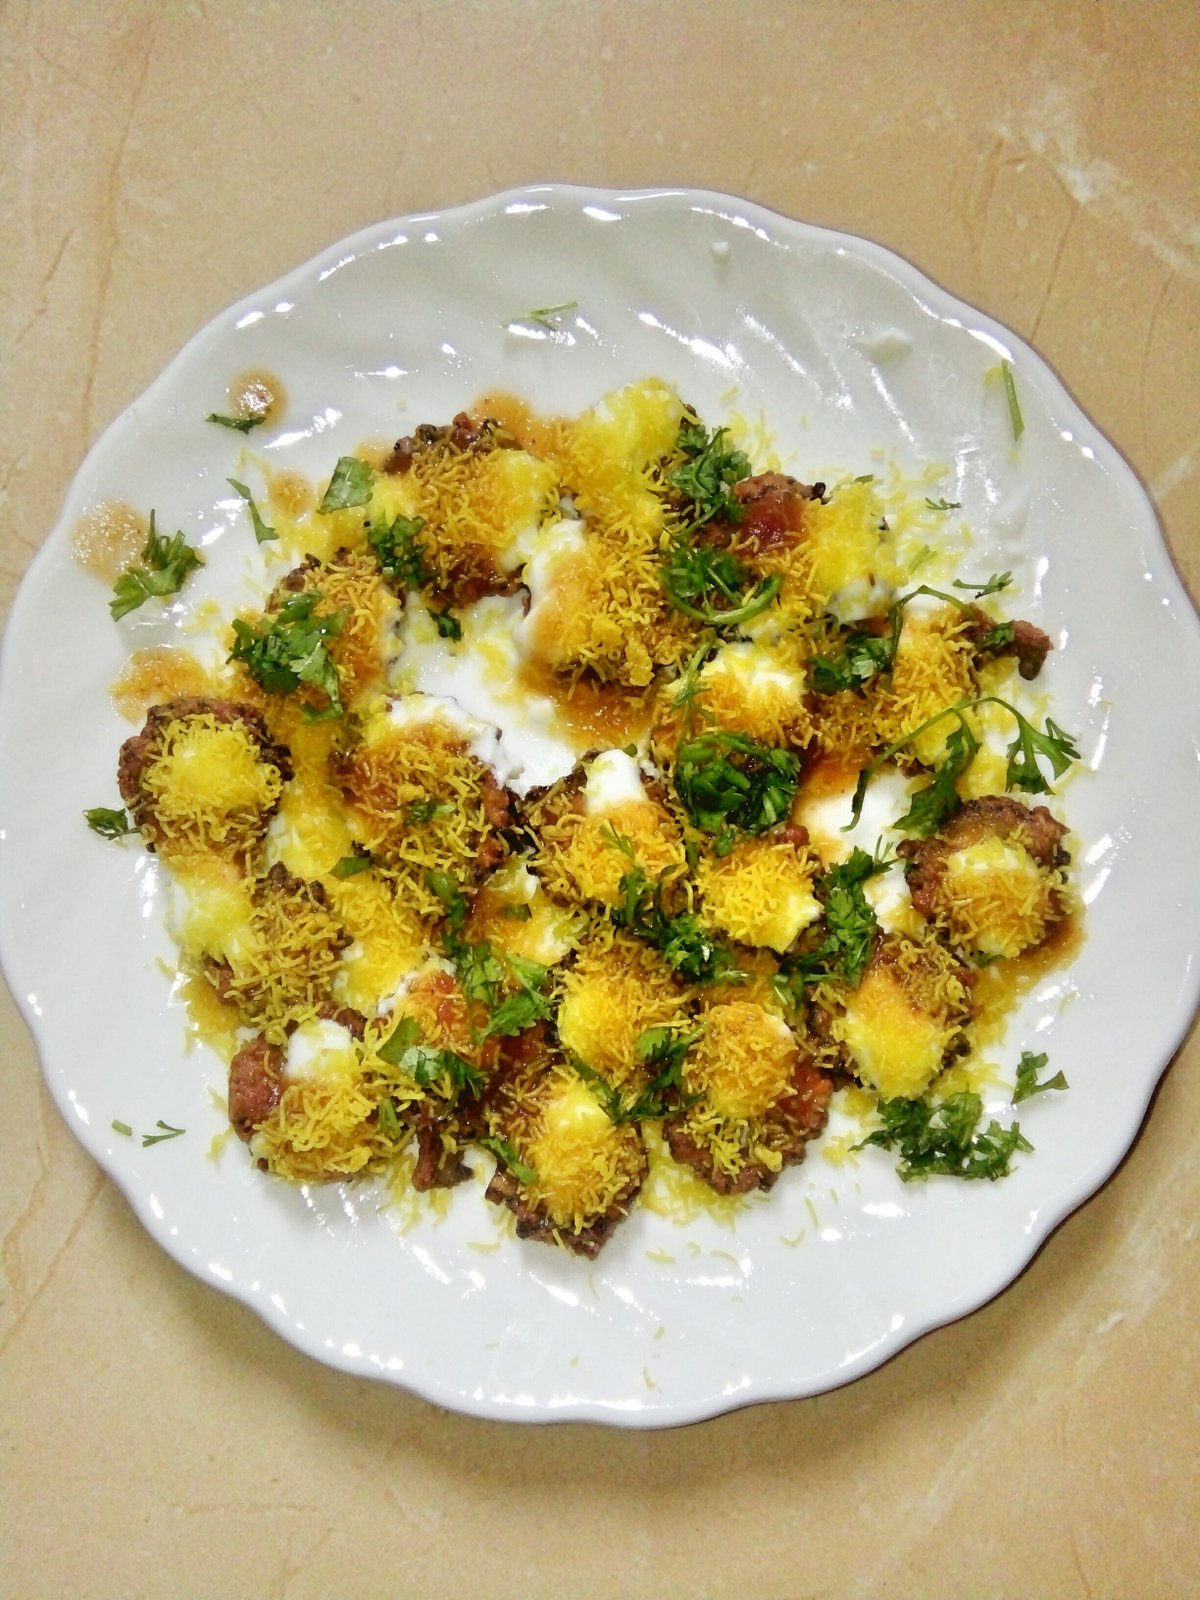 Karela Dahi Puri Recipe - A Chatpata Chaat Made From Bitter Gourd